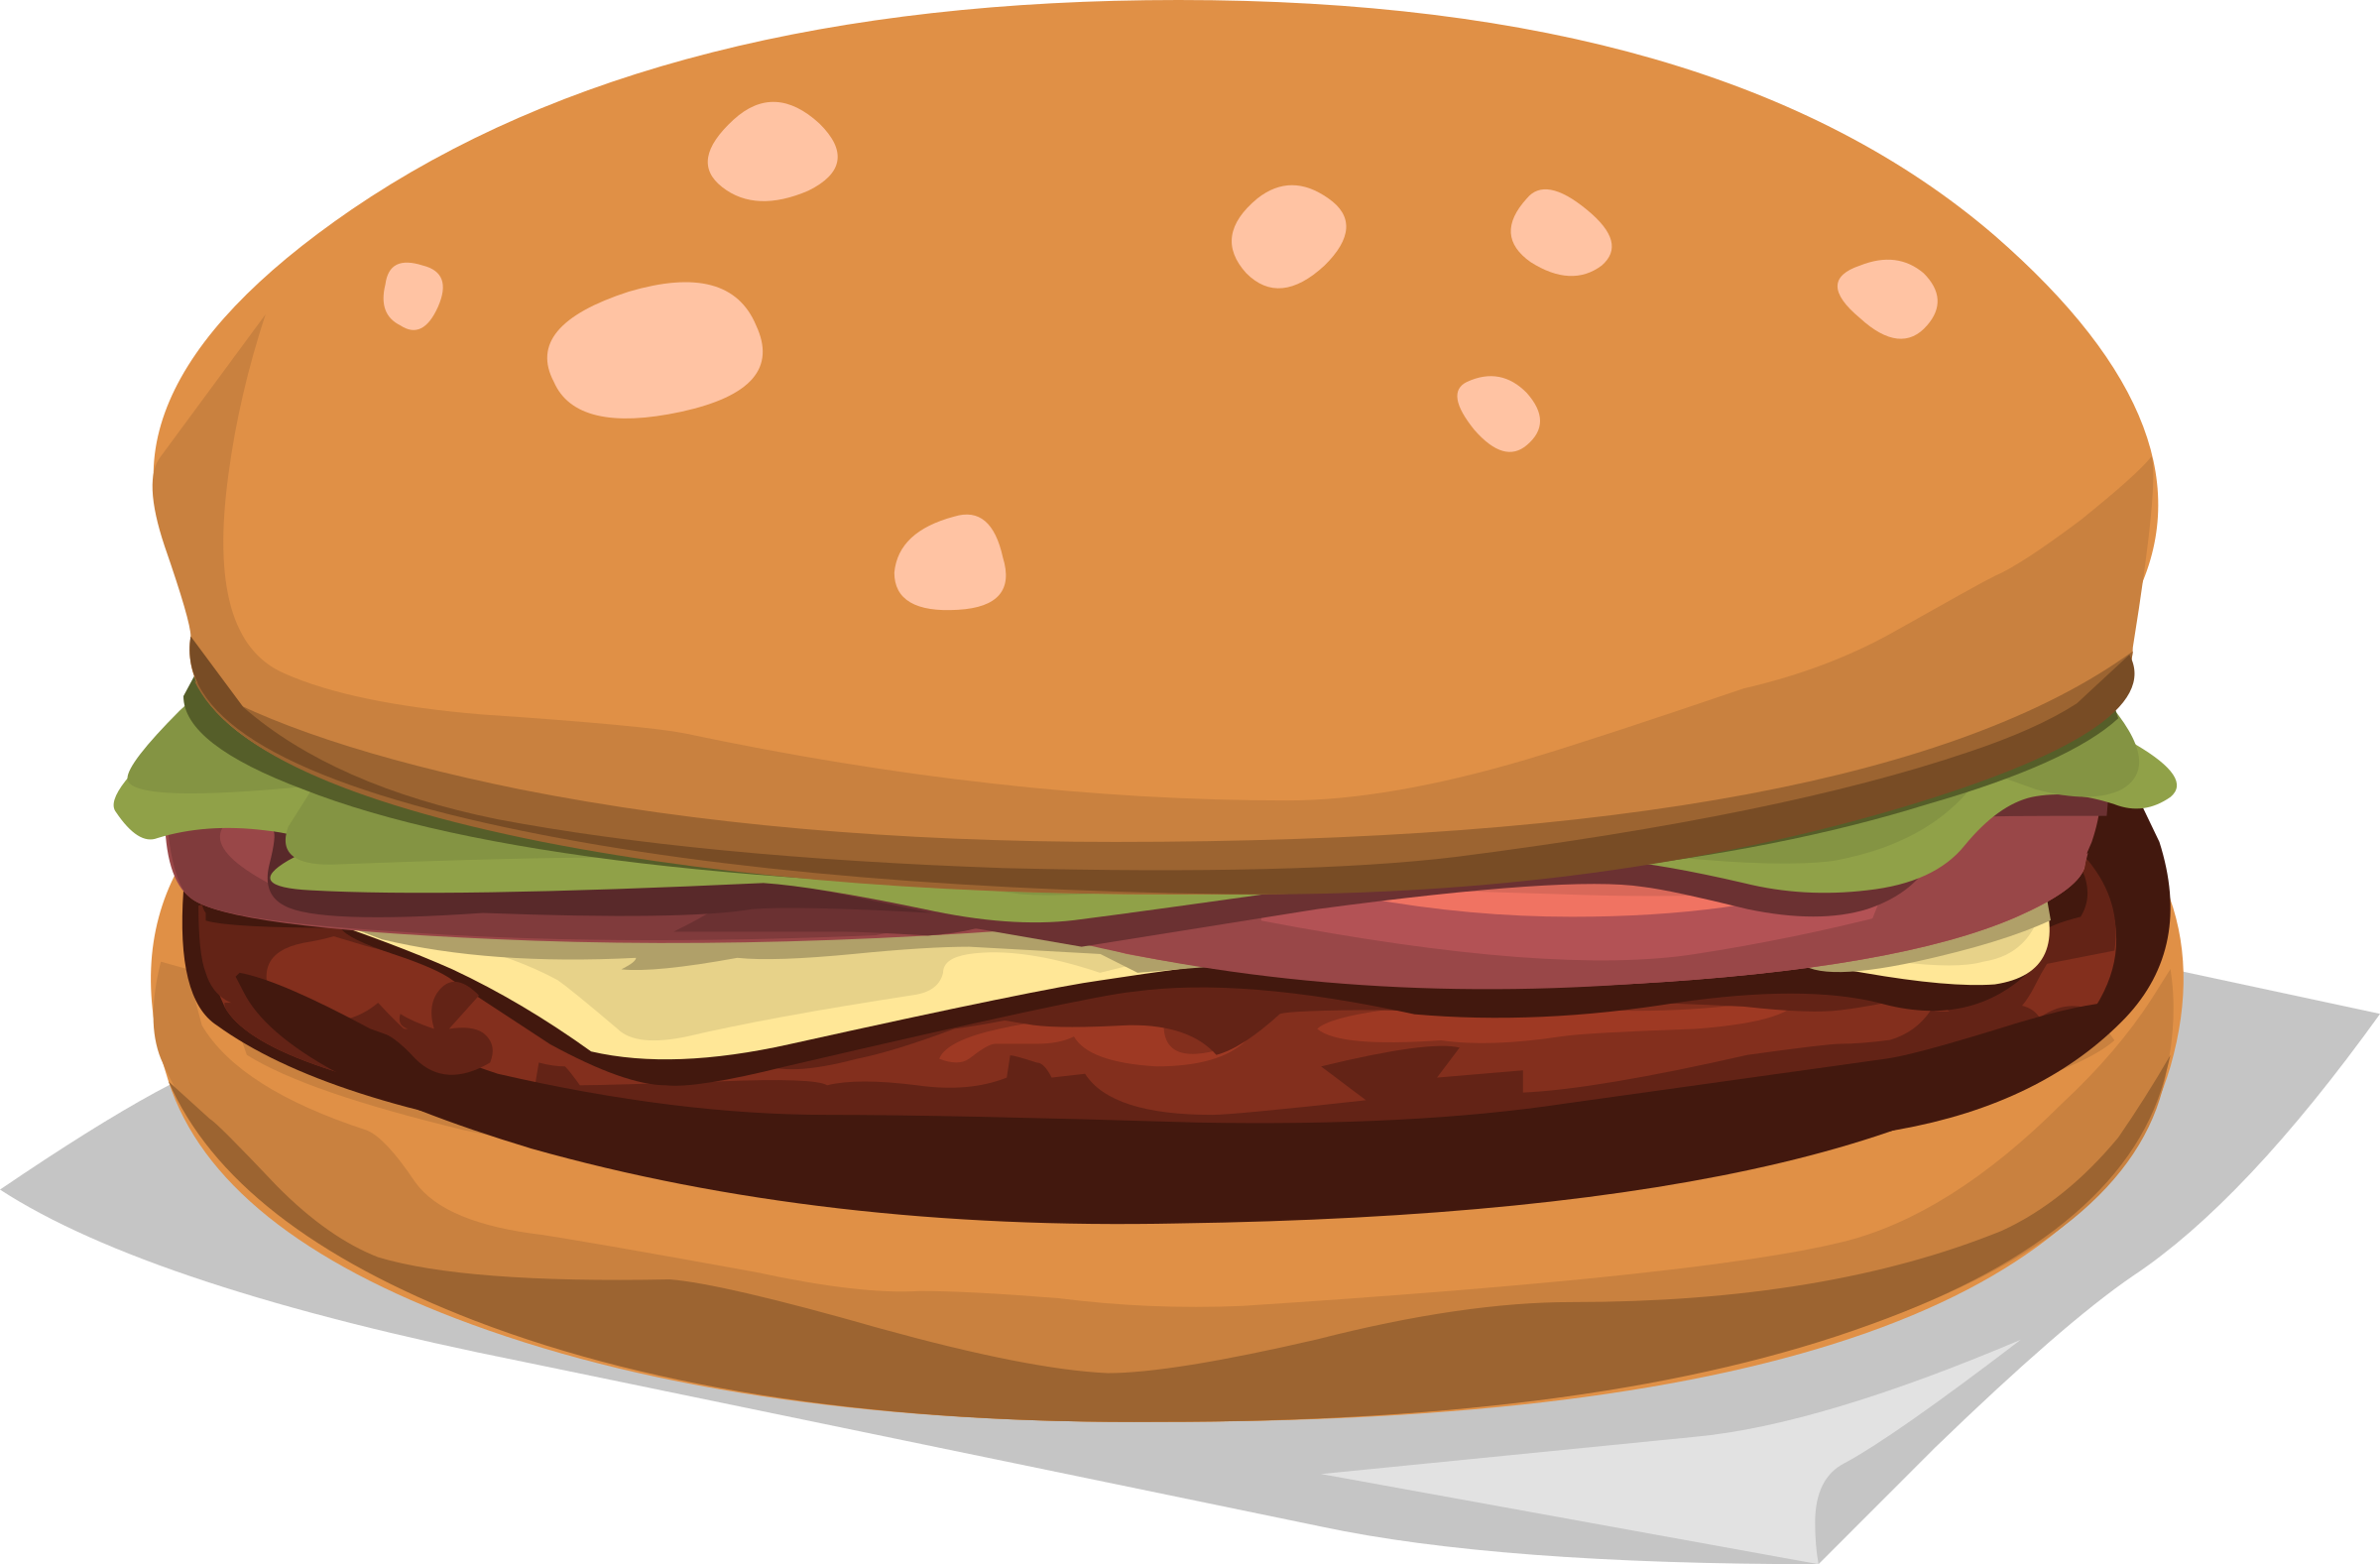 Food Maburger Royale by @glitch, This glitch clipart is about food, maburger, royale.glitch was a computer game whose visual assets were released into the public domain domain after the game failed commercially. The entire collection is about 2,000 clipart.http://en.wikipedia.org/wiki/Glitch_(video_game)The glitch assets were converted to svg format by Bart from opengameart.orghttp://opengameart.org/content/glitch-svgs, on @openclipart